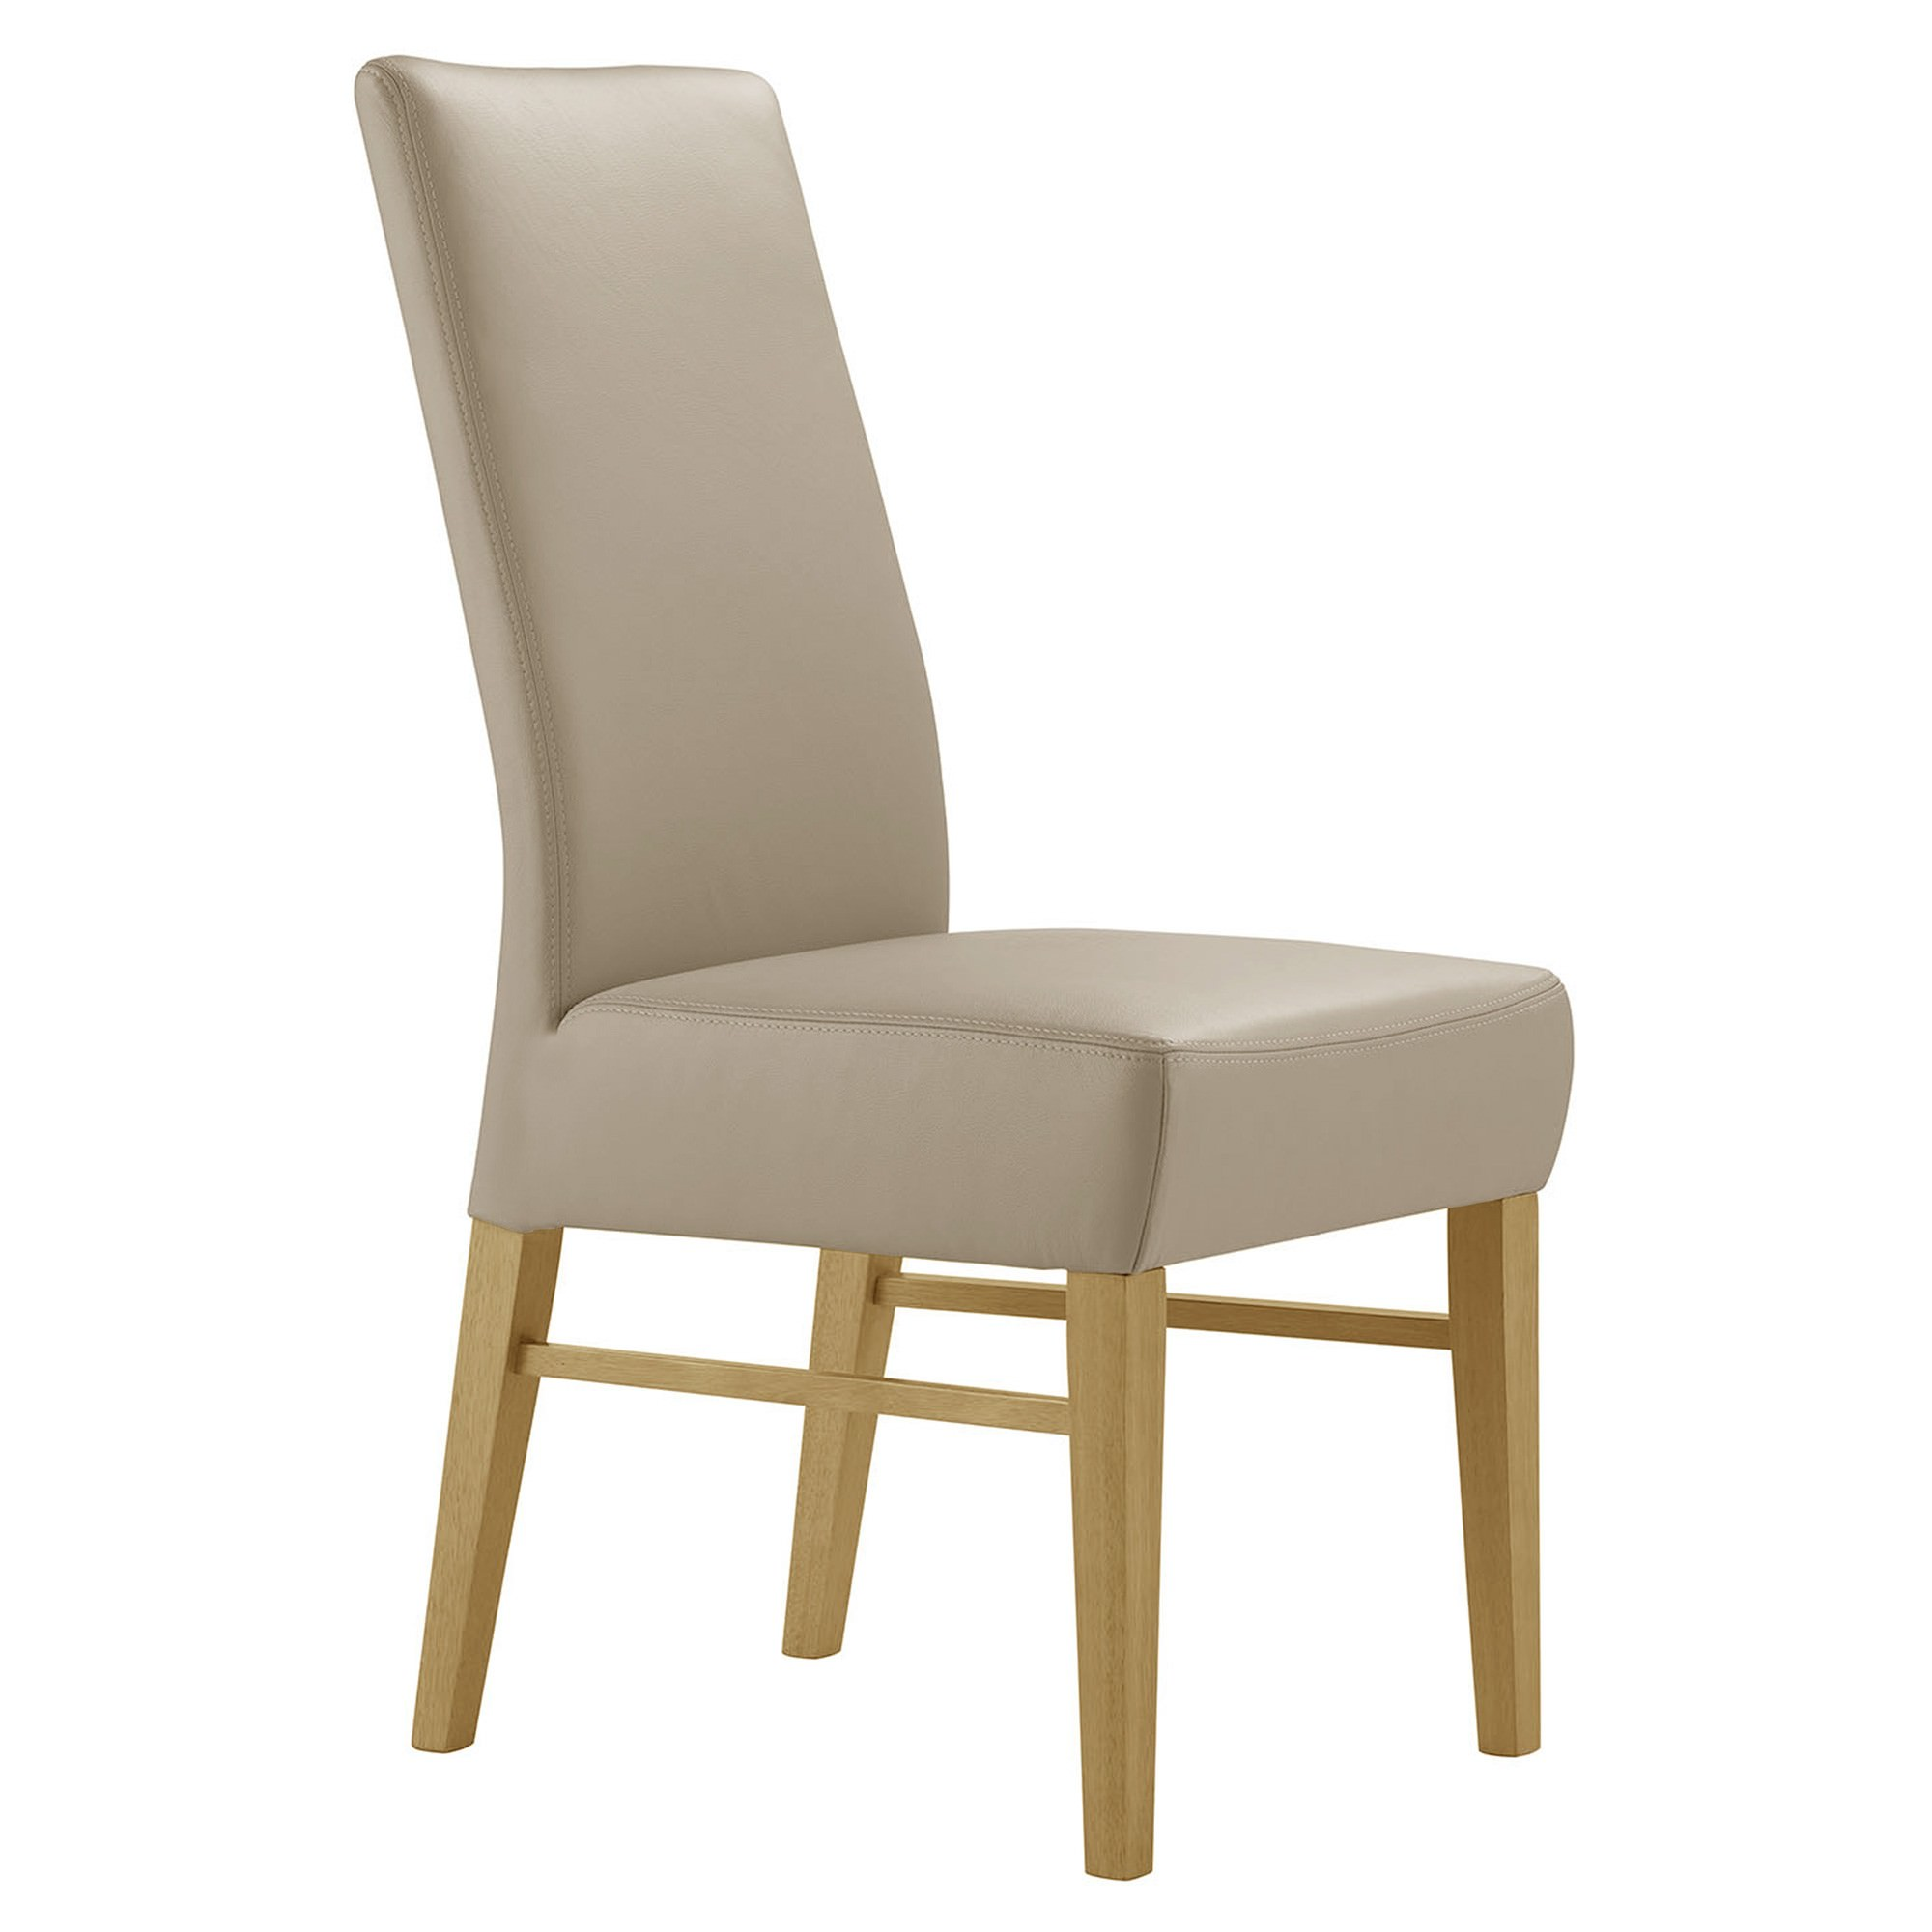 Davos Leather Dining Chair, Mocha / Wheat